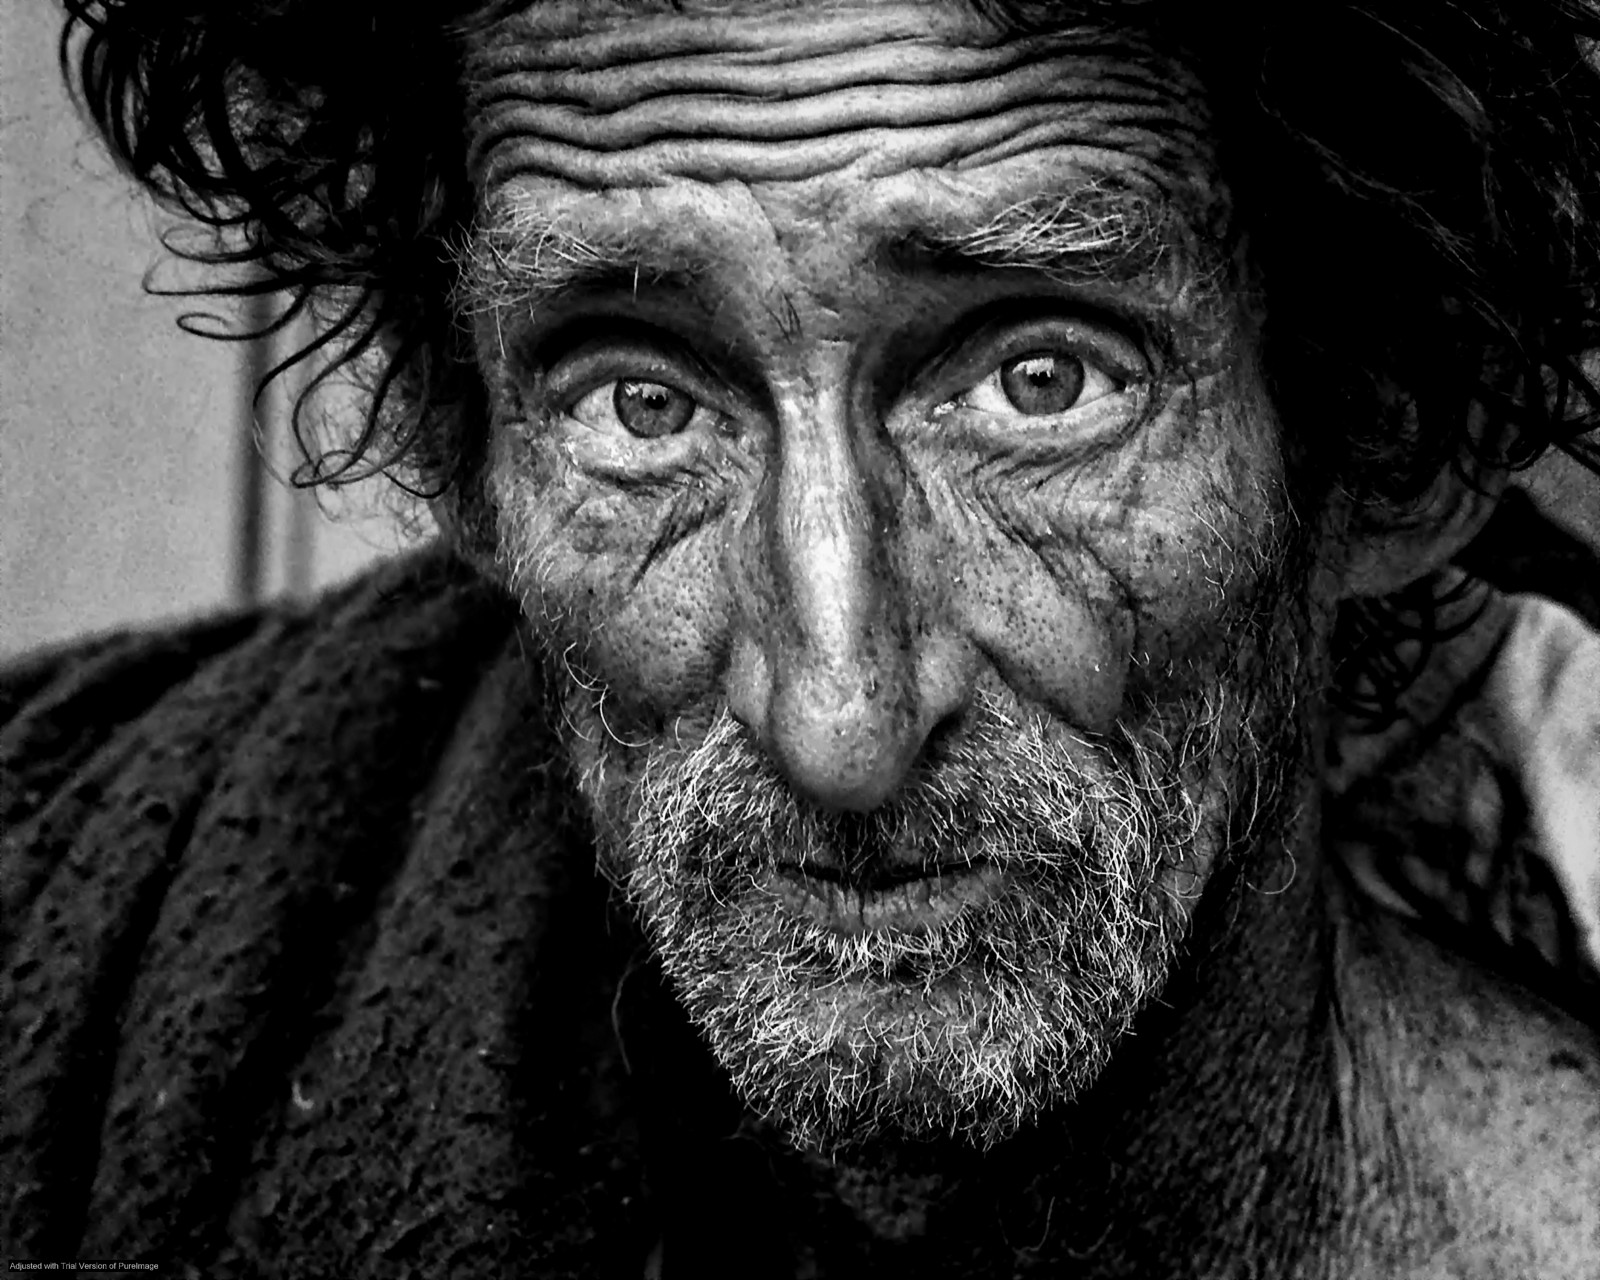 The story of a homeless man who changed his life